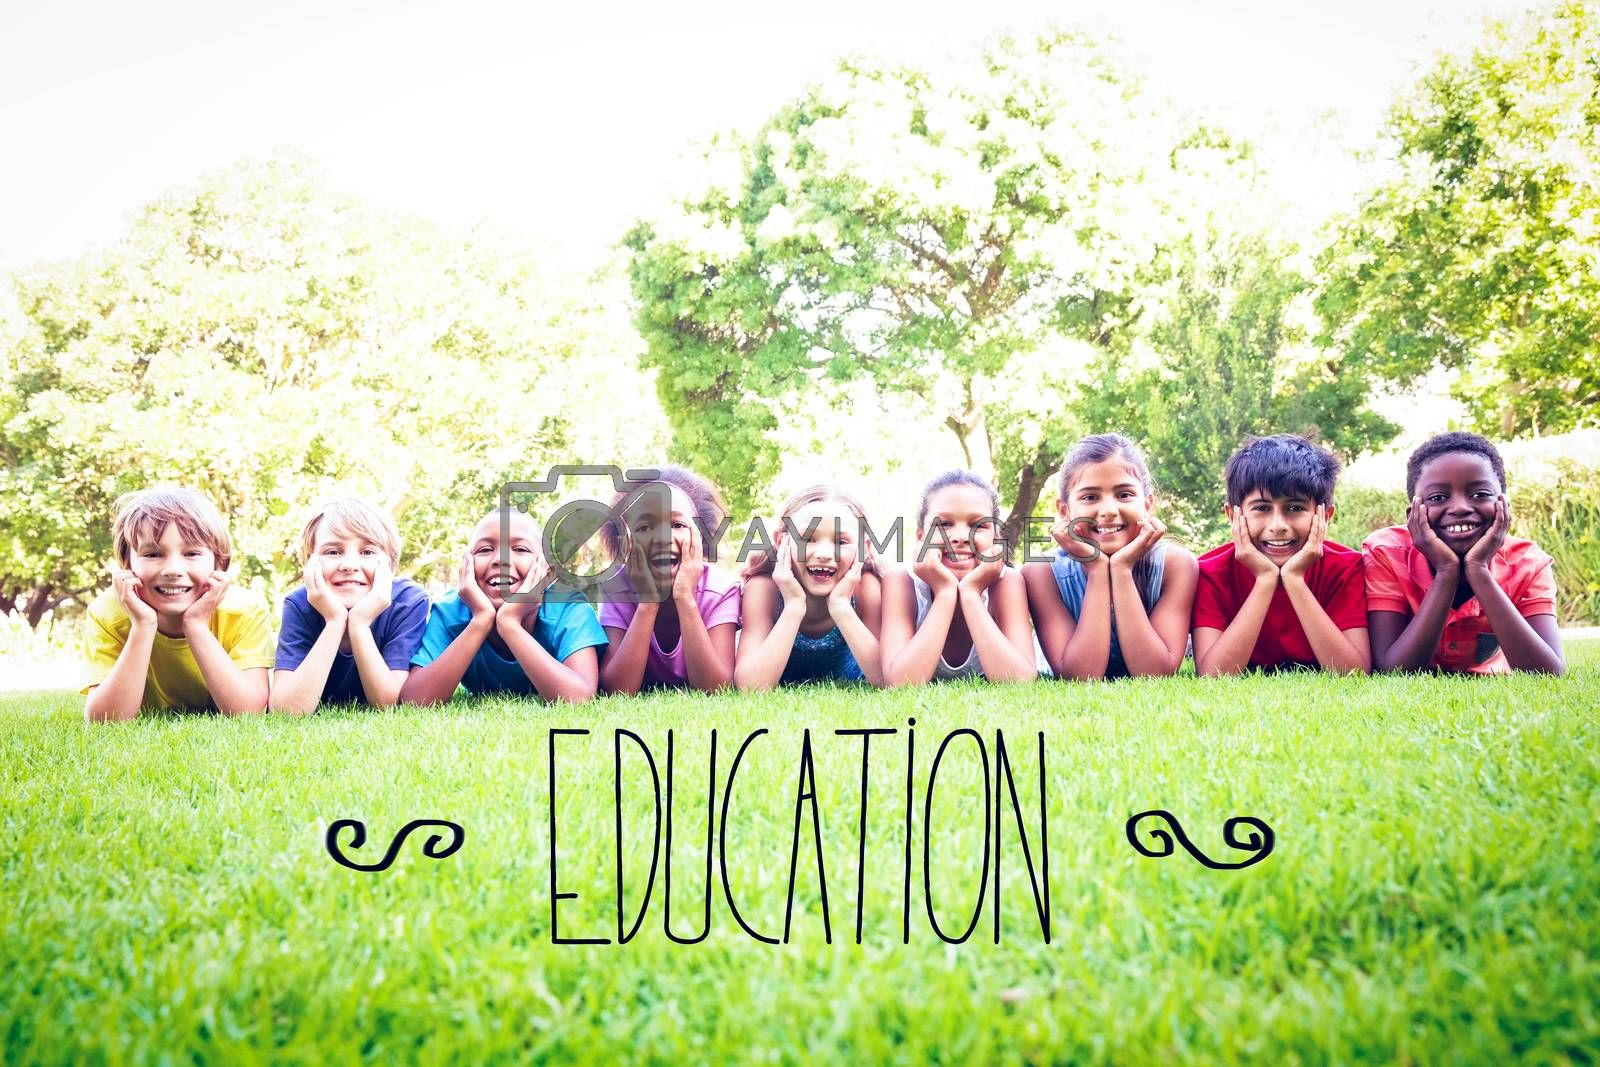 The word education against happy friends in the park